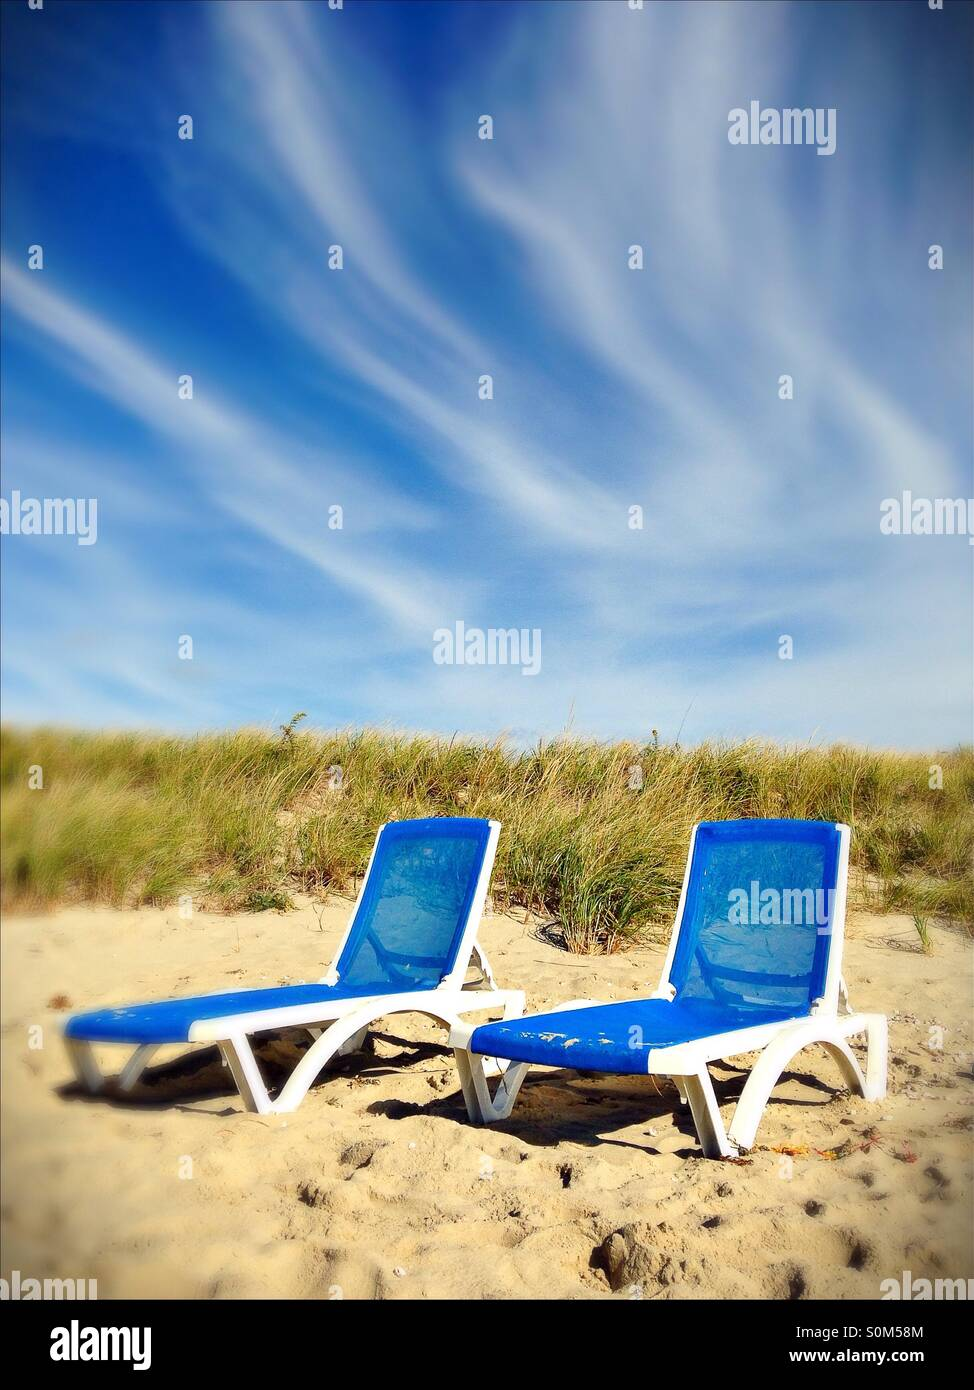 Two blue beach chairs in the dunes. - Stock Image